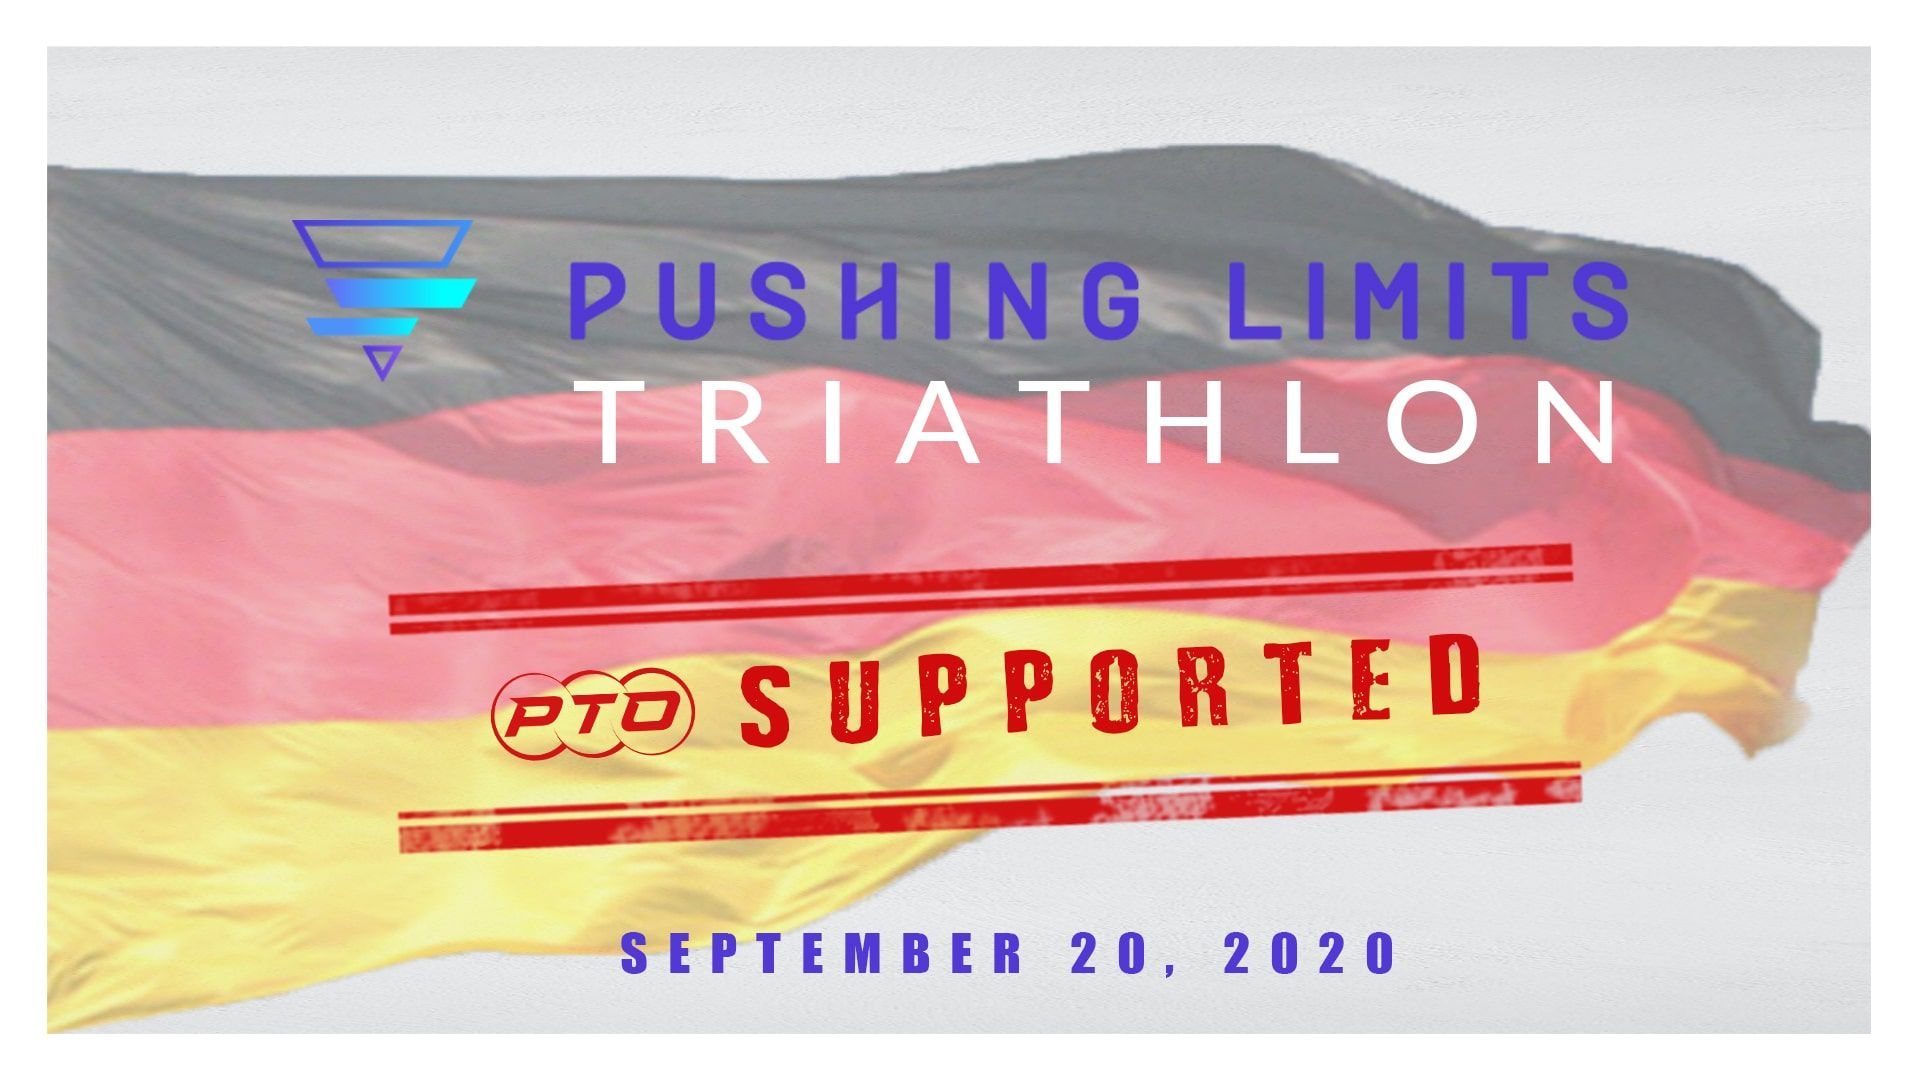 PROFESSIONAL TRIATHLETES ORGANISATION SUPPORTS PUSHING LIMITS RACE IN GERMANY WITH €15,000 PRIZE PURSE